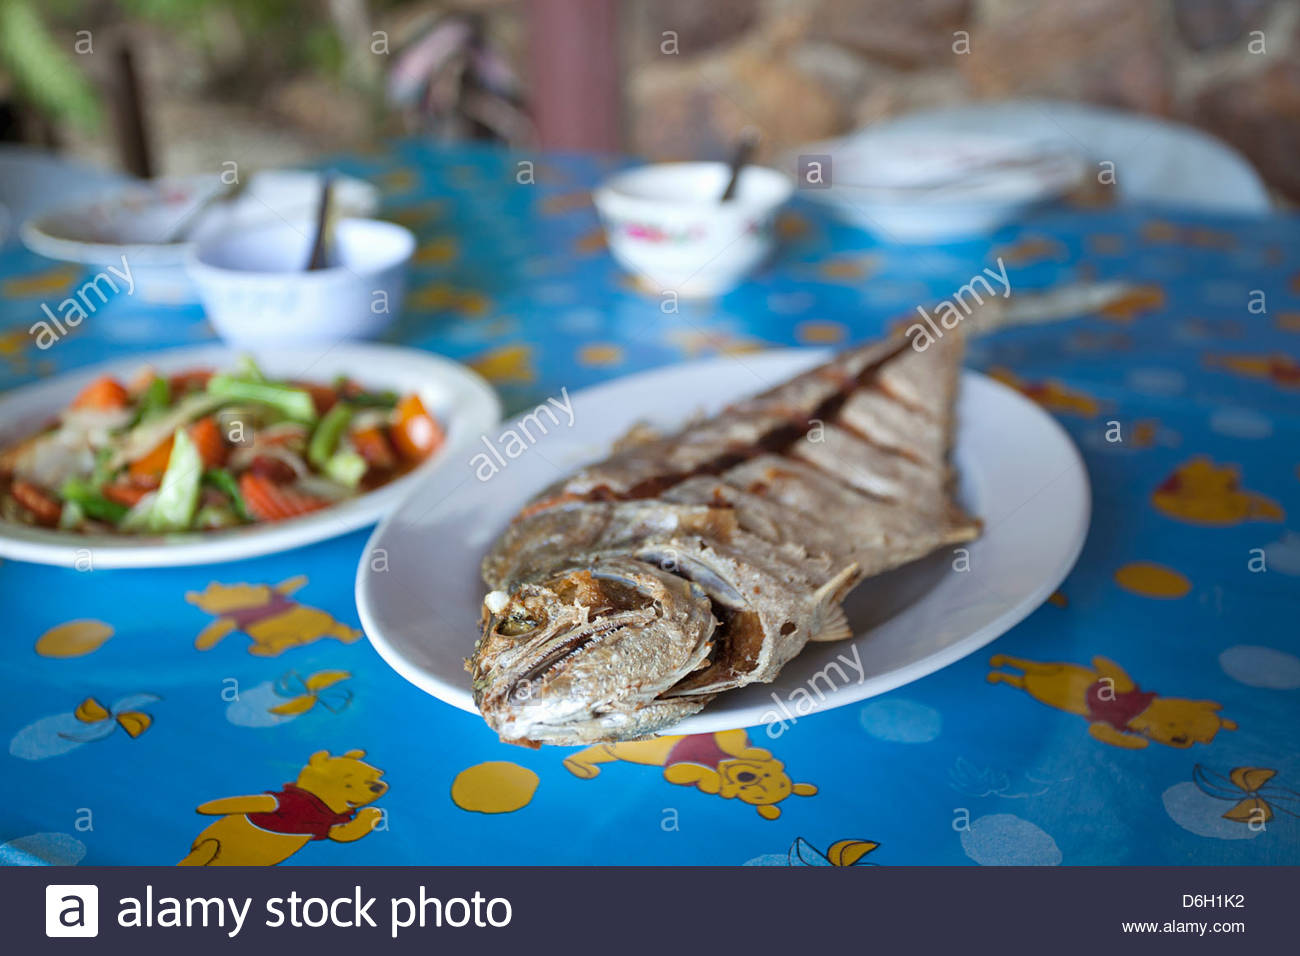 Plates of fish and vegetables on table - Stock Image